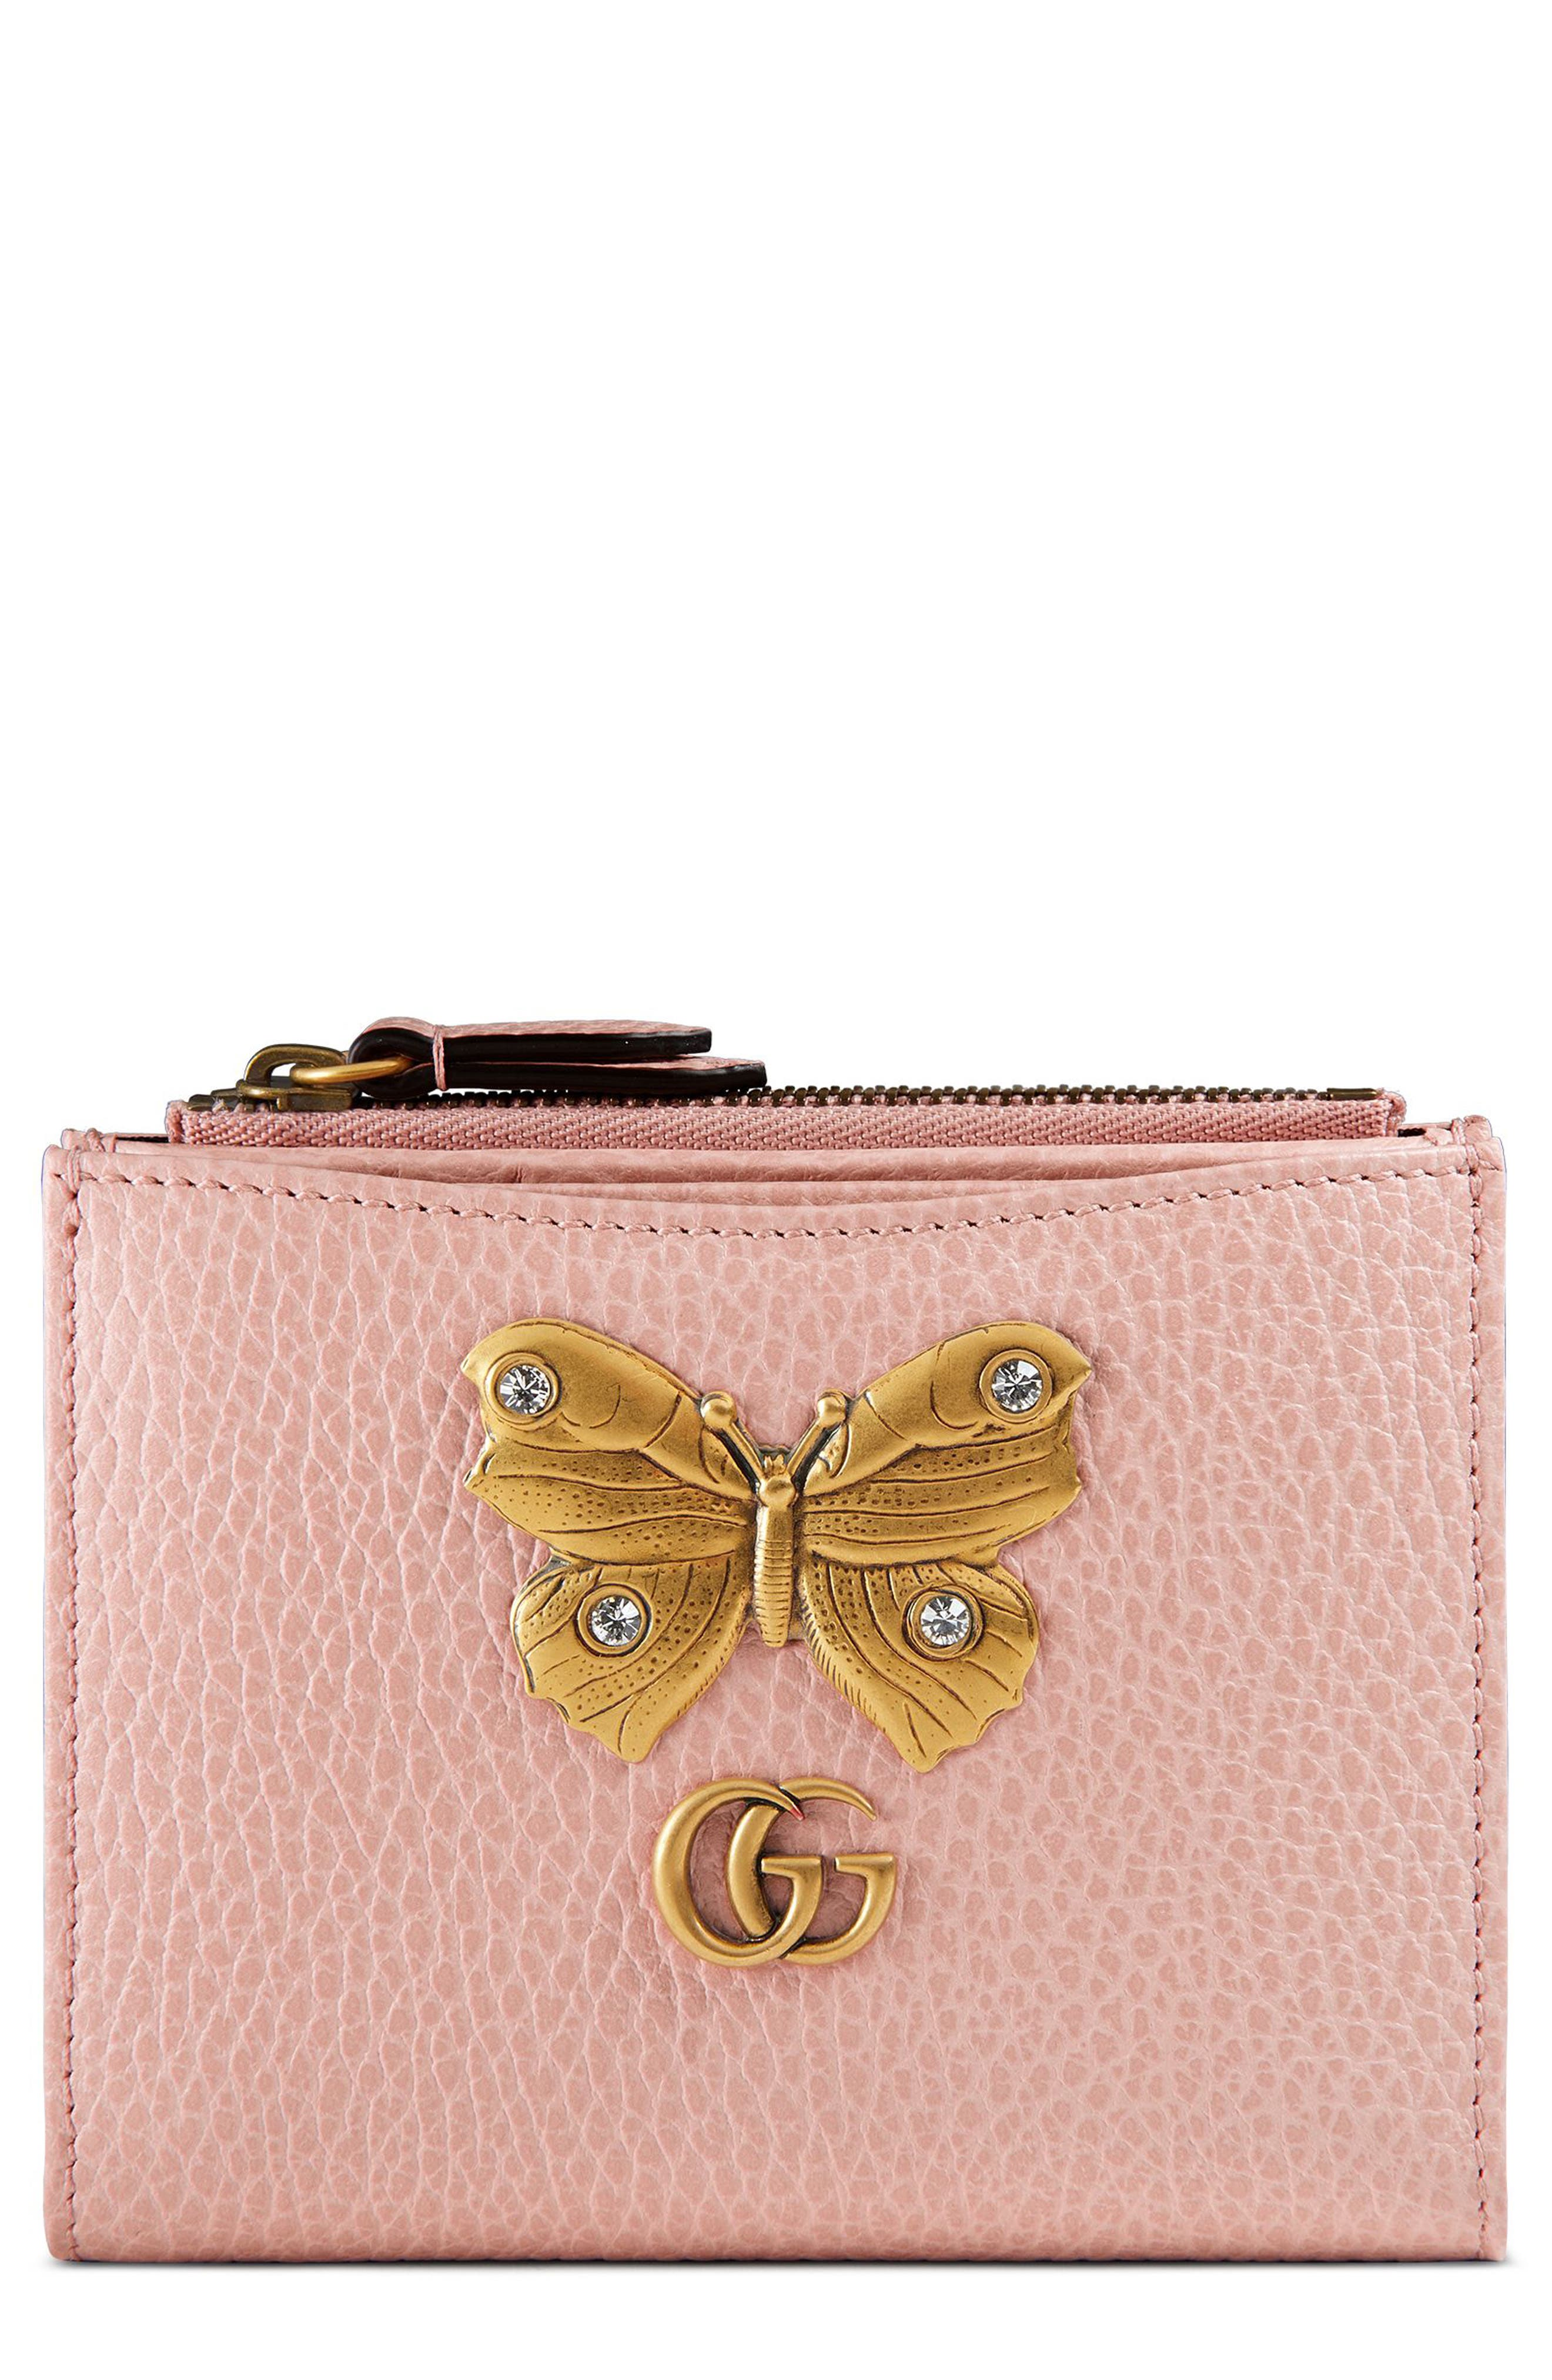 Farfalla Leather Wallet,                         Main,                         color, Perfect Pink/ Crystal